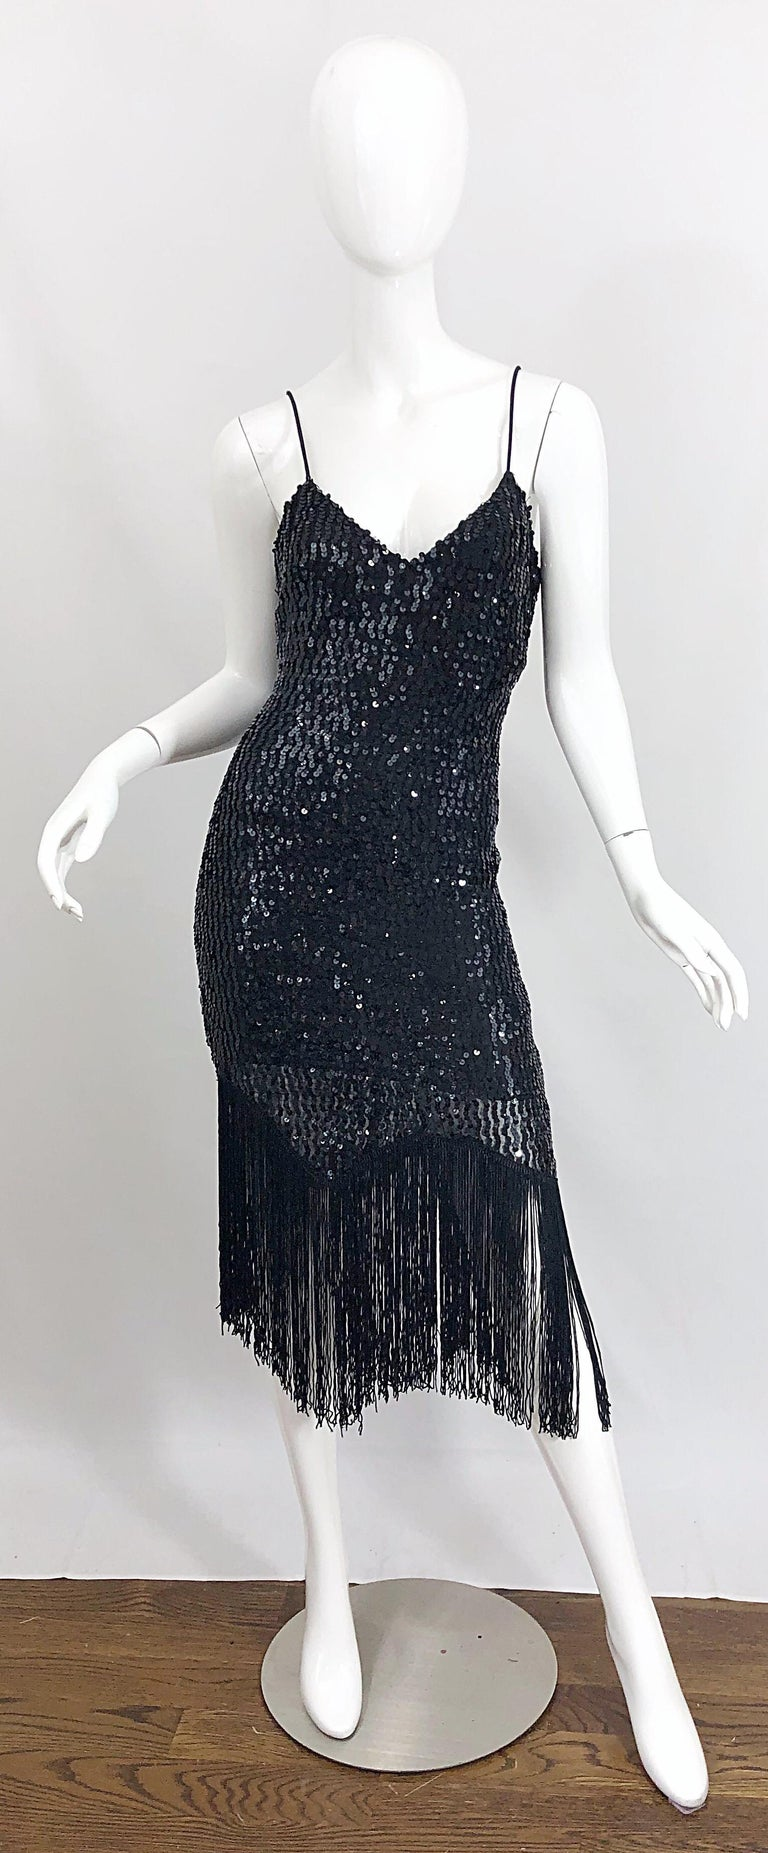 New with tags 70s does 20s JOY STEVENS black sequined flapper style fringed dress! Features thousands of hand-sewn black sequins throughout. Fringe hem makes this dress perfect for dancing. Figure flattering fit that features some stretch. Hidden